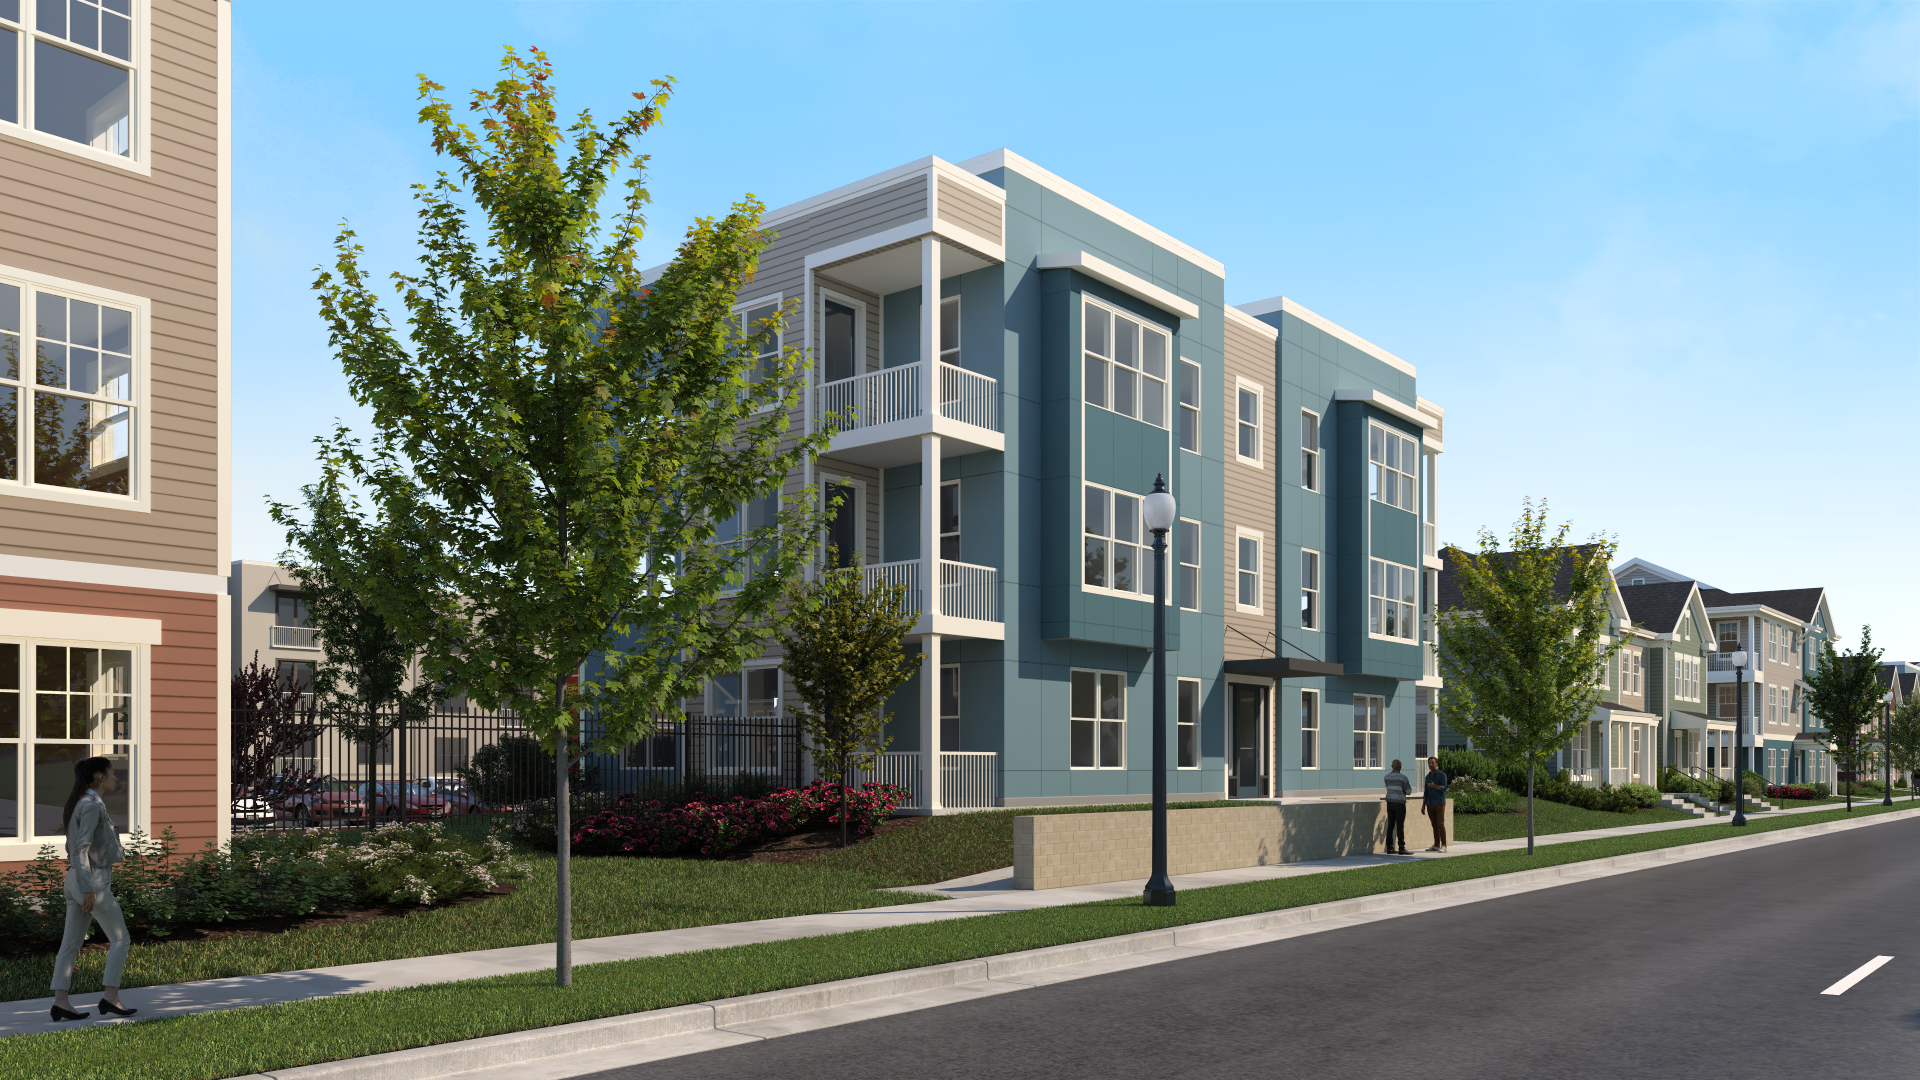 Digital rendering of street view with three story apartment building-Preservation Square